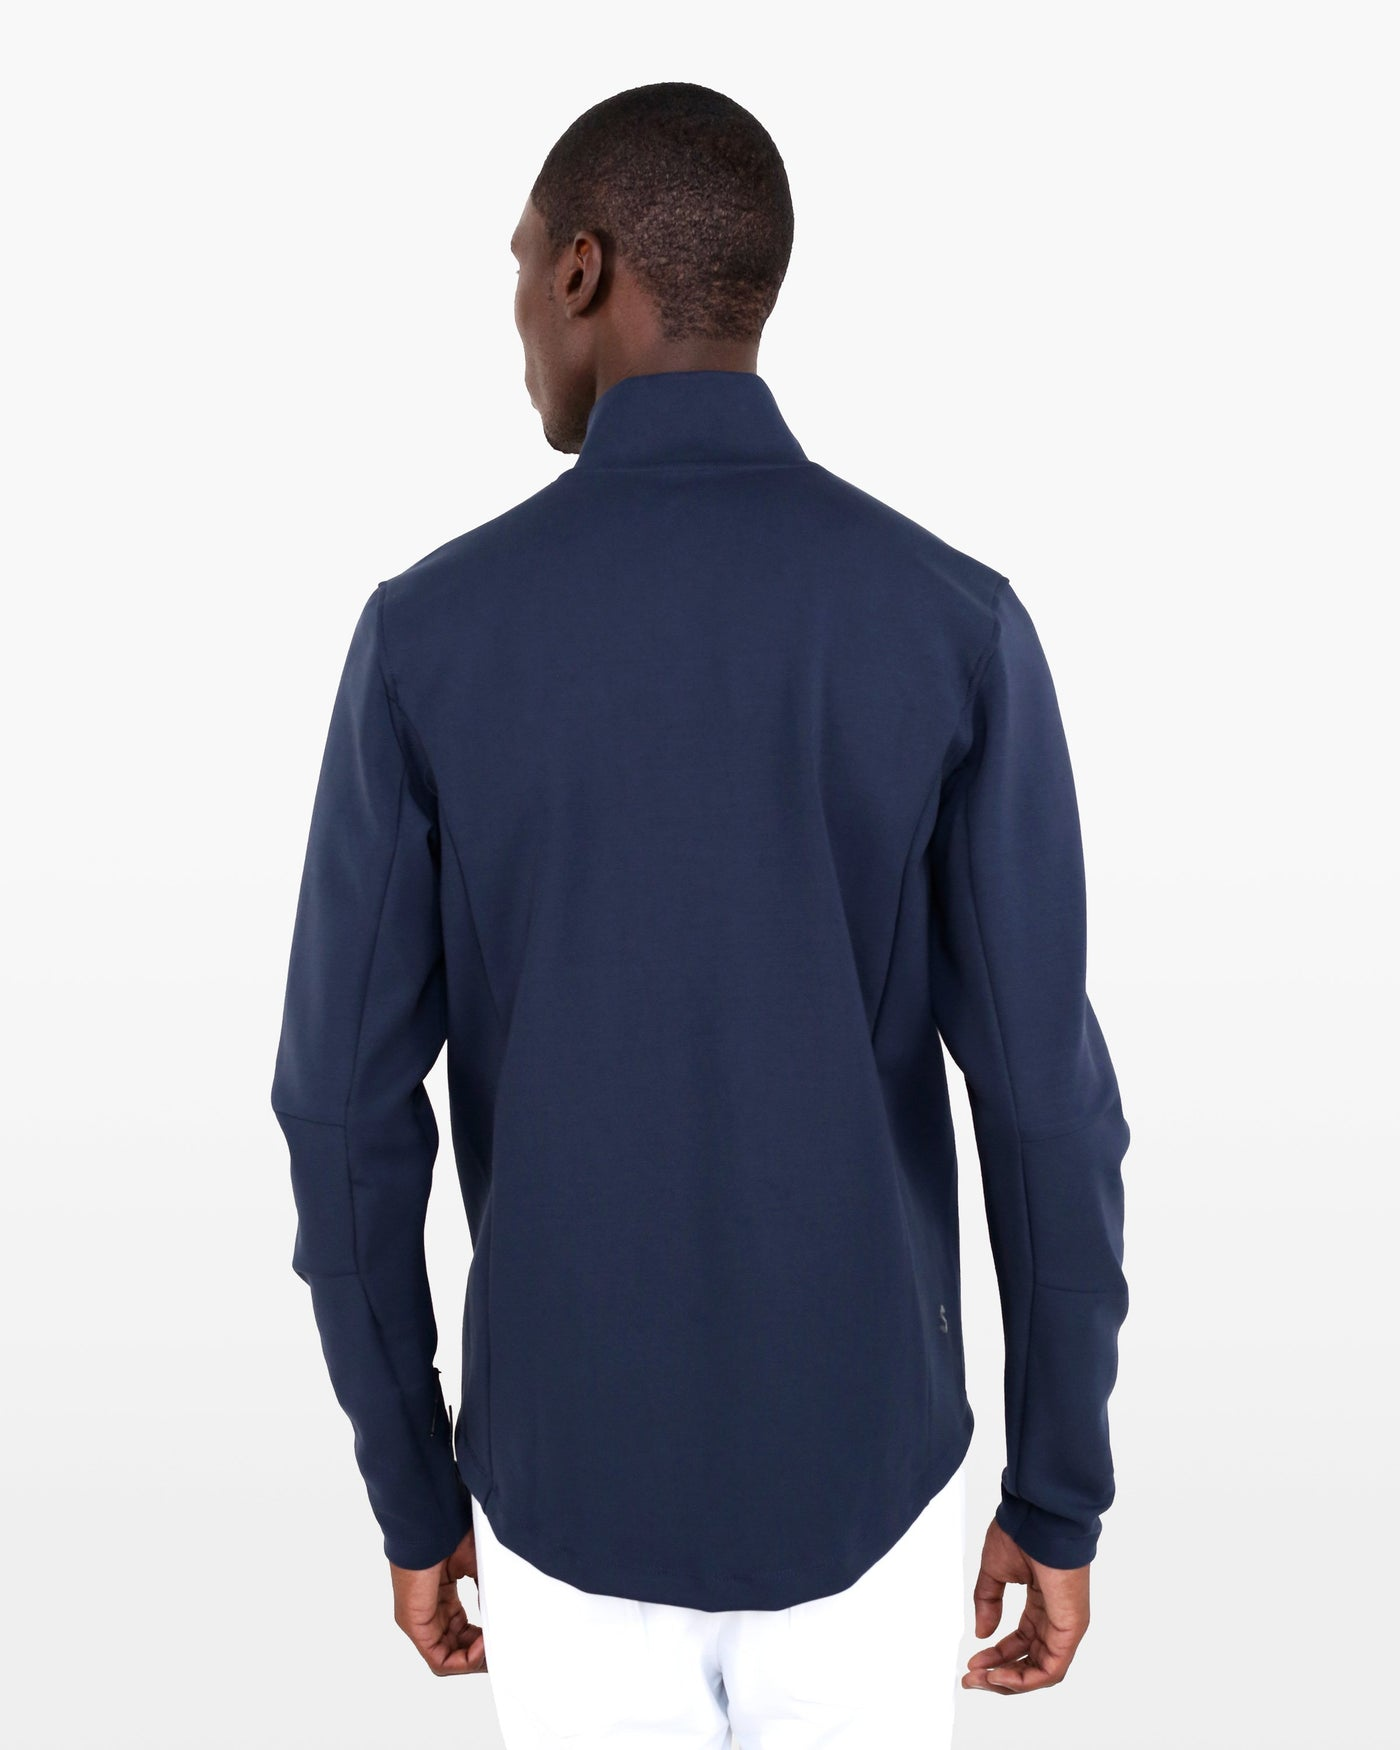 Descartes Jacket SUP in marine